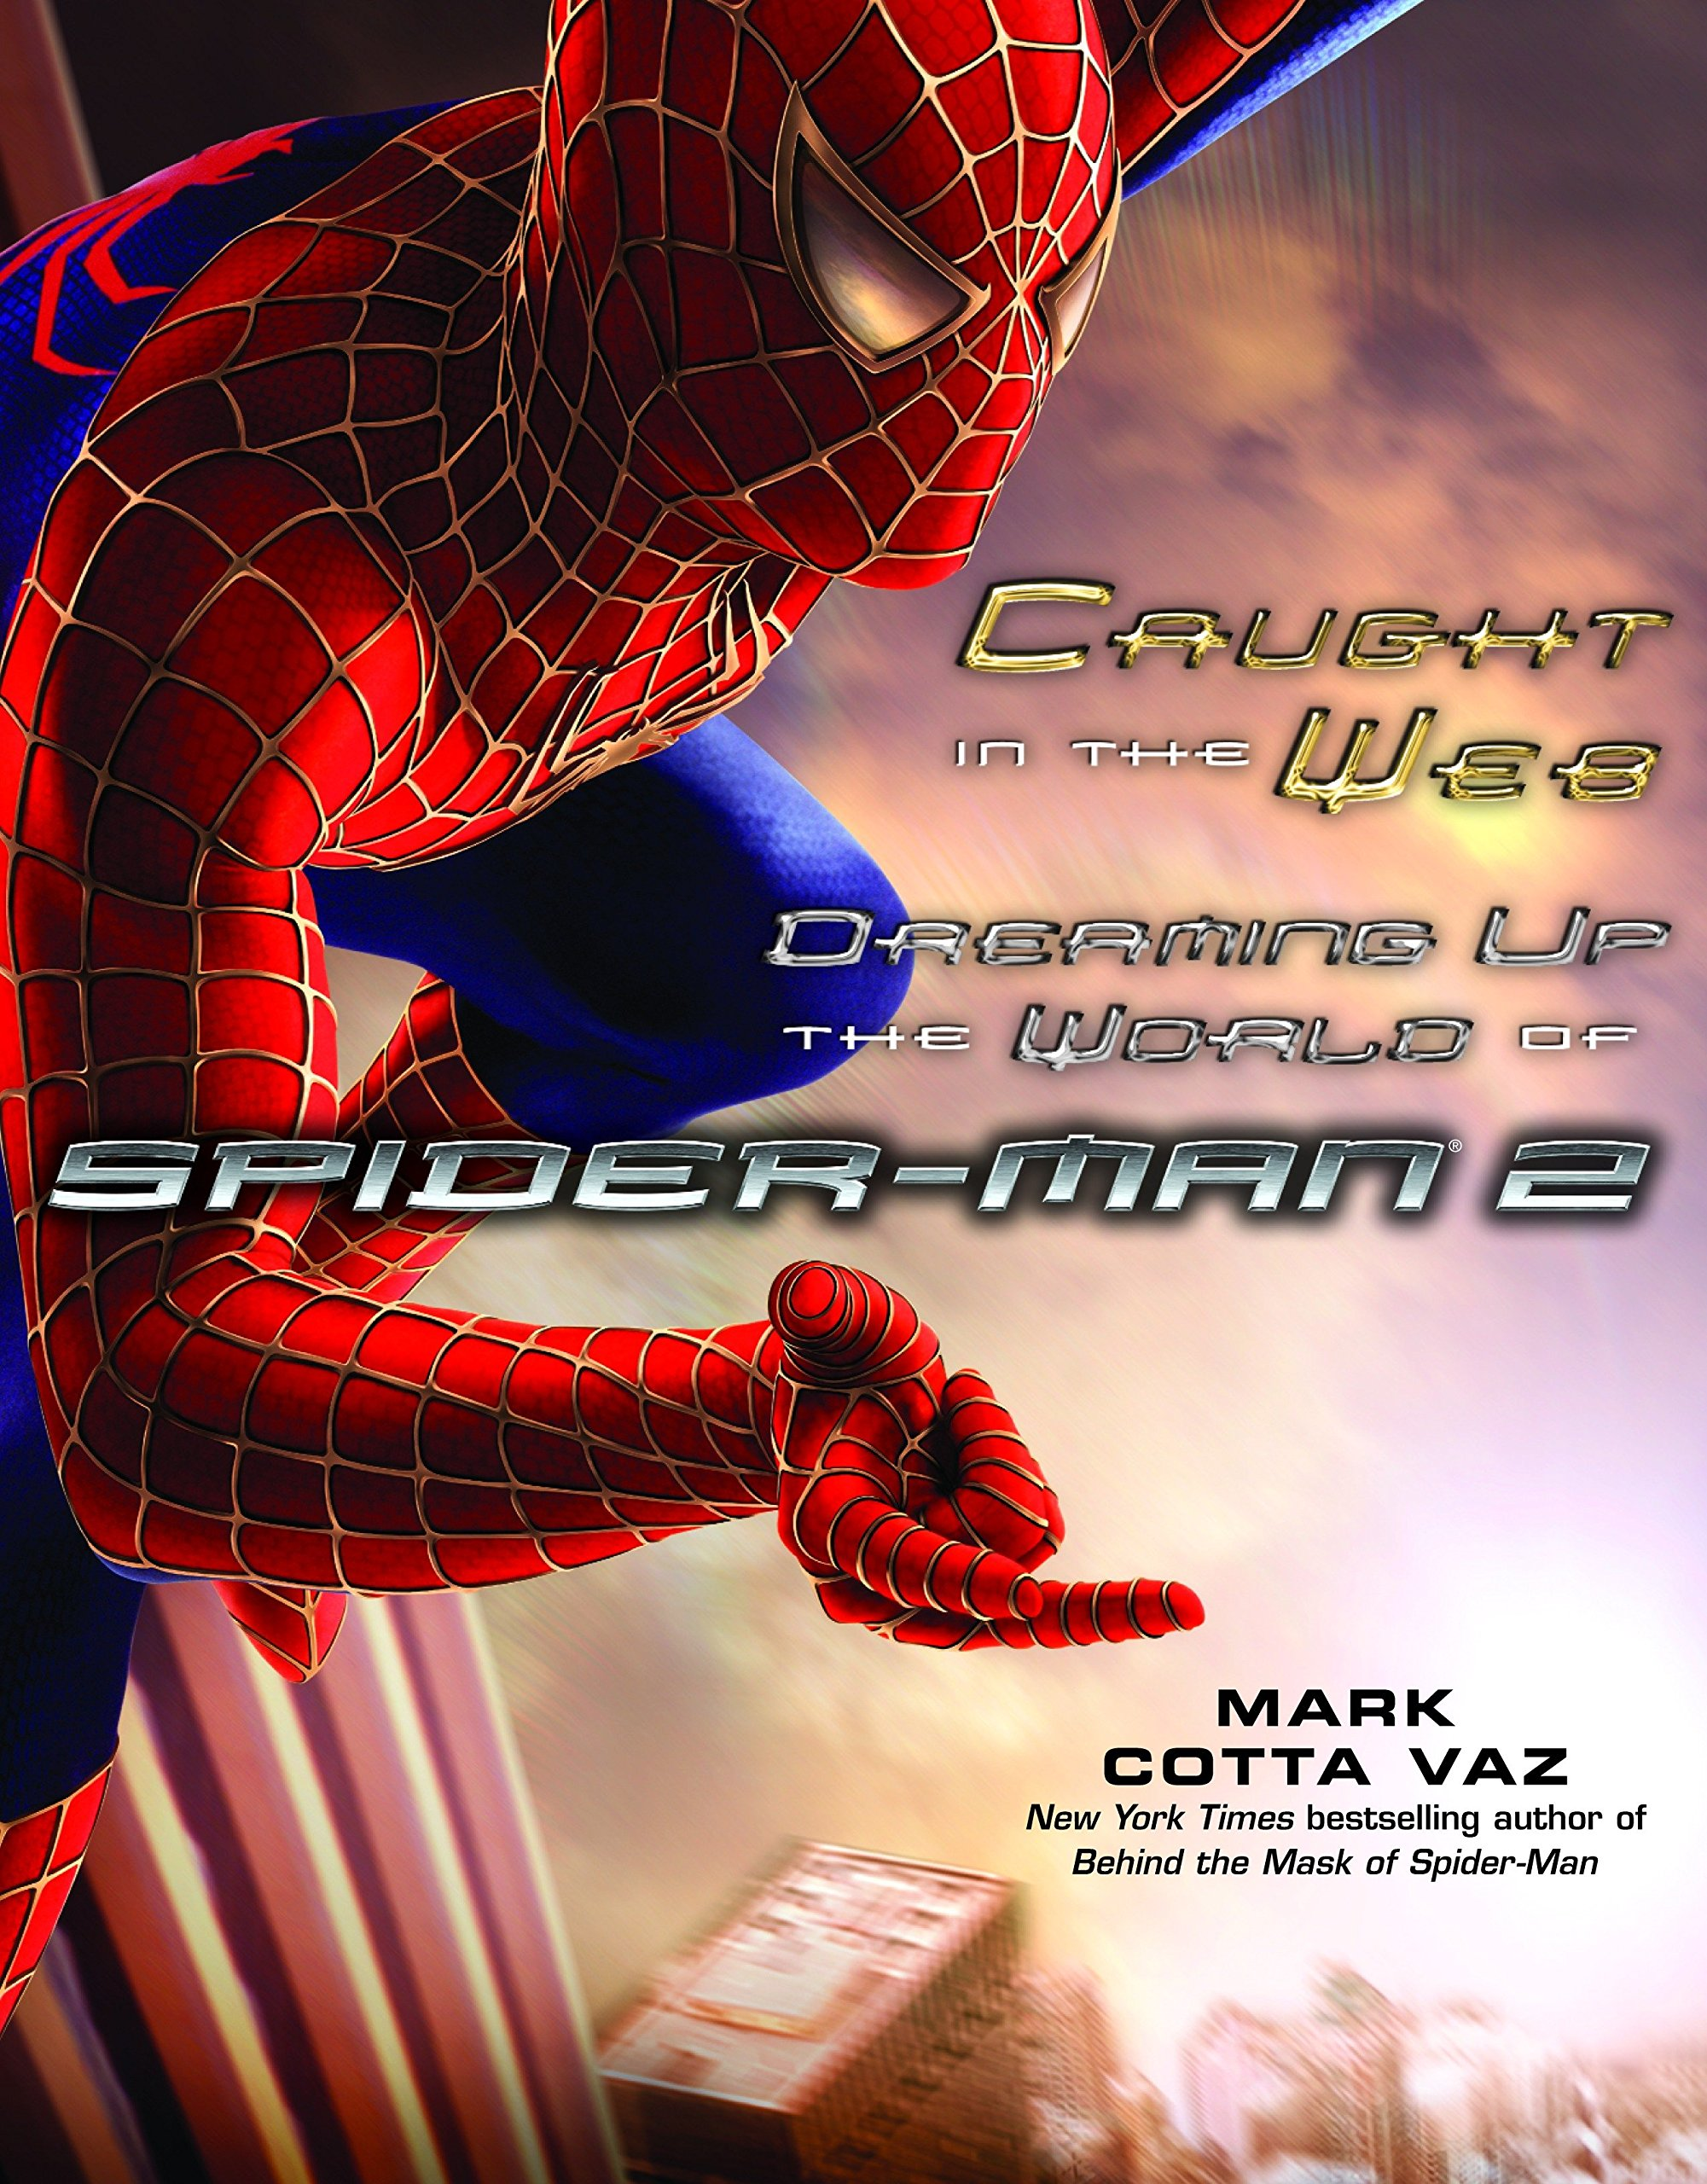 Caught in the Web: Dreaming Up the World of Spider-Man 2 pdf epub